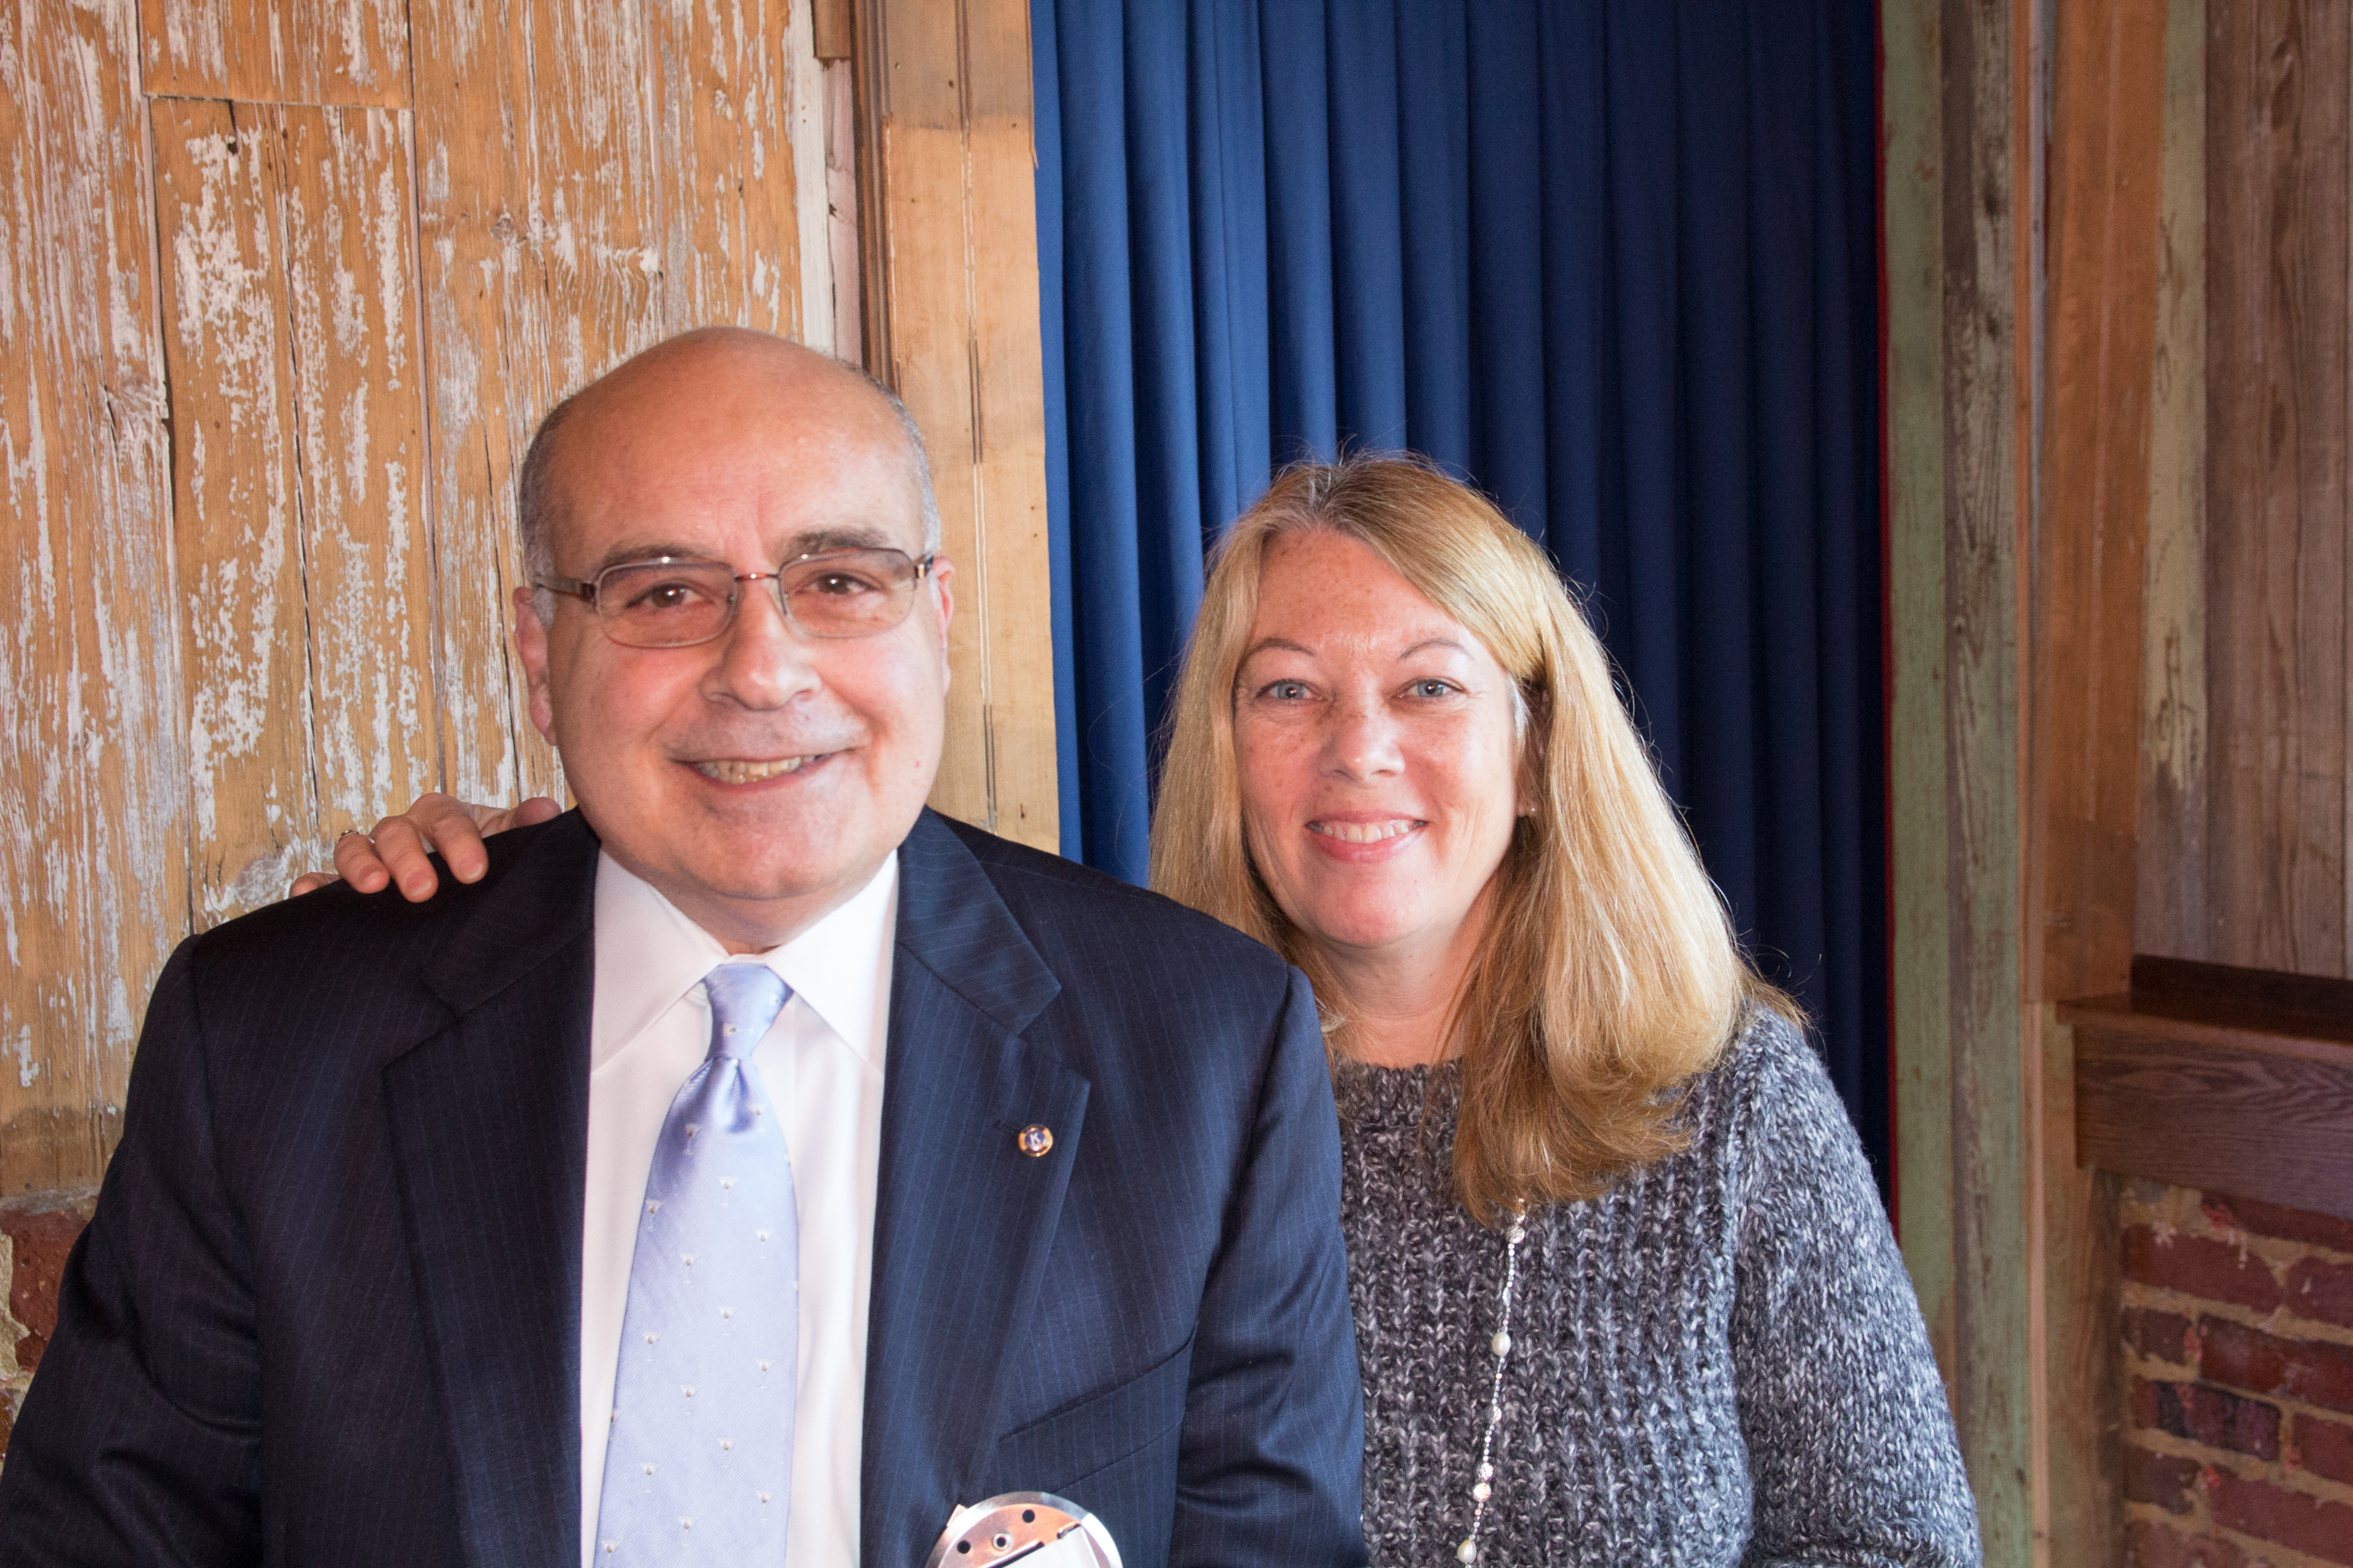 Past-president Joe Teti with Laurie Pellichero